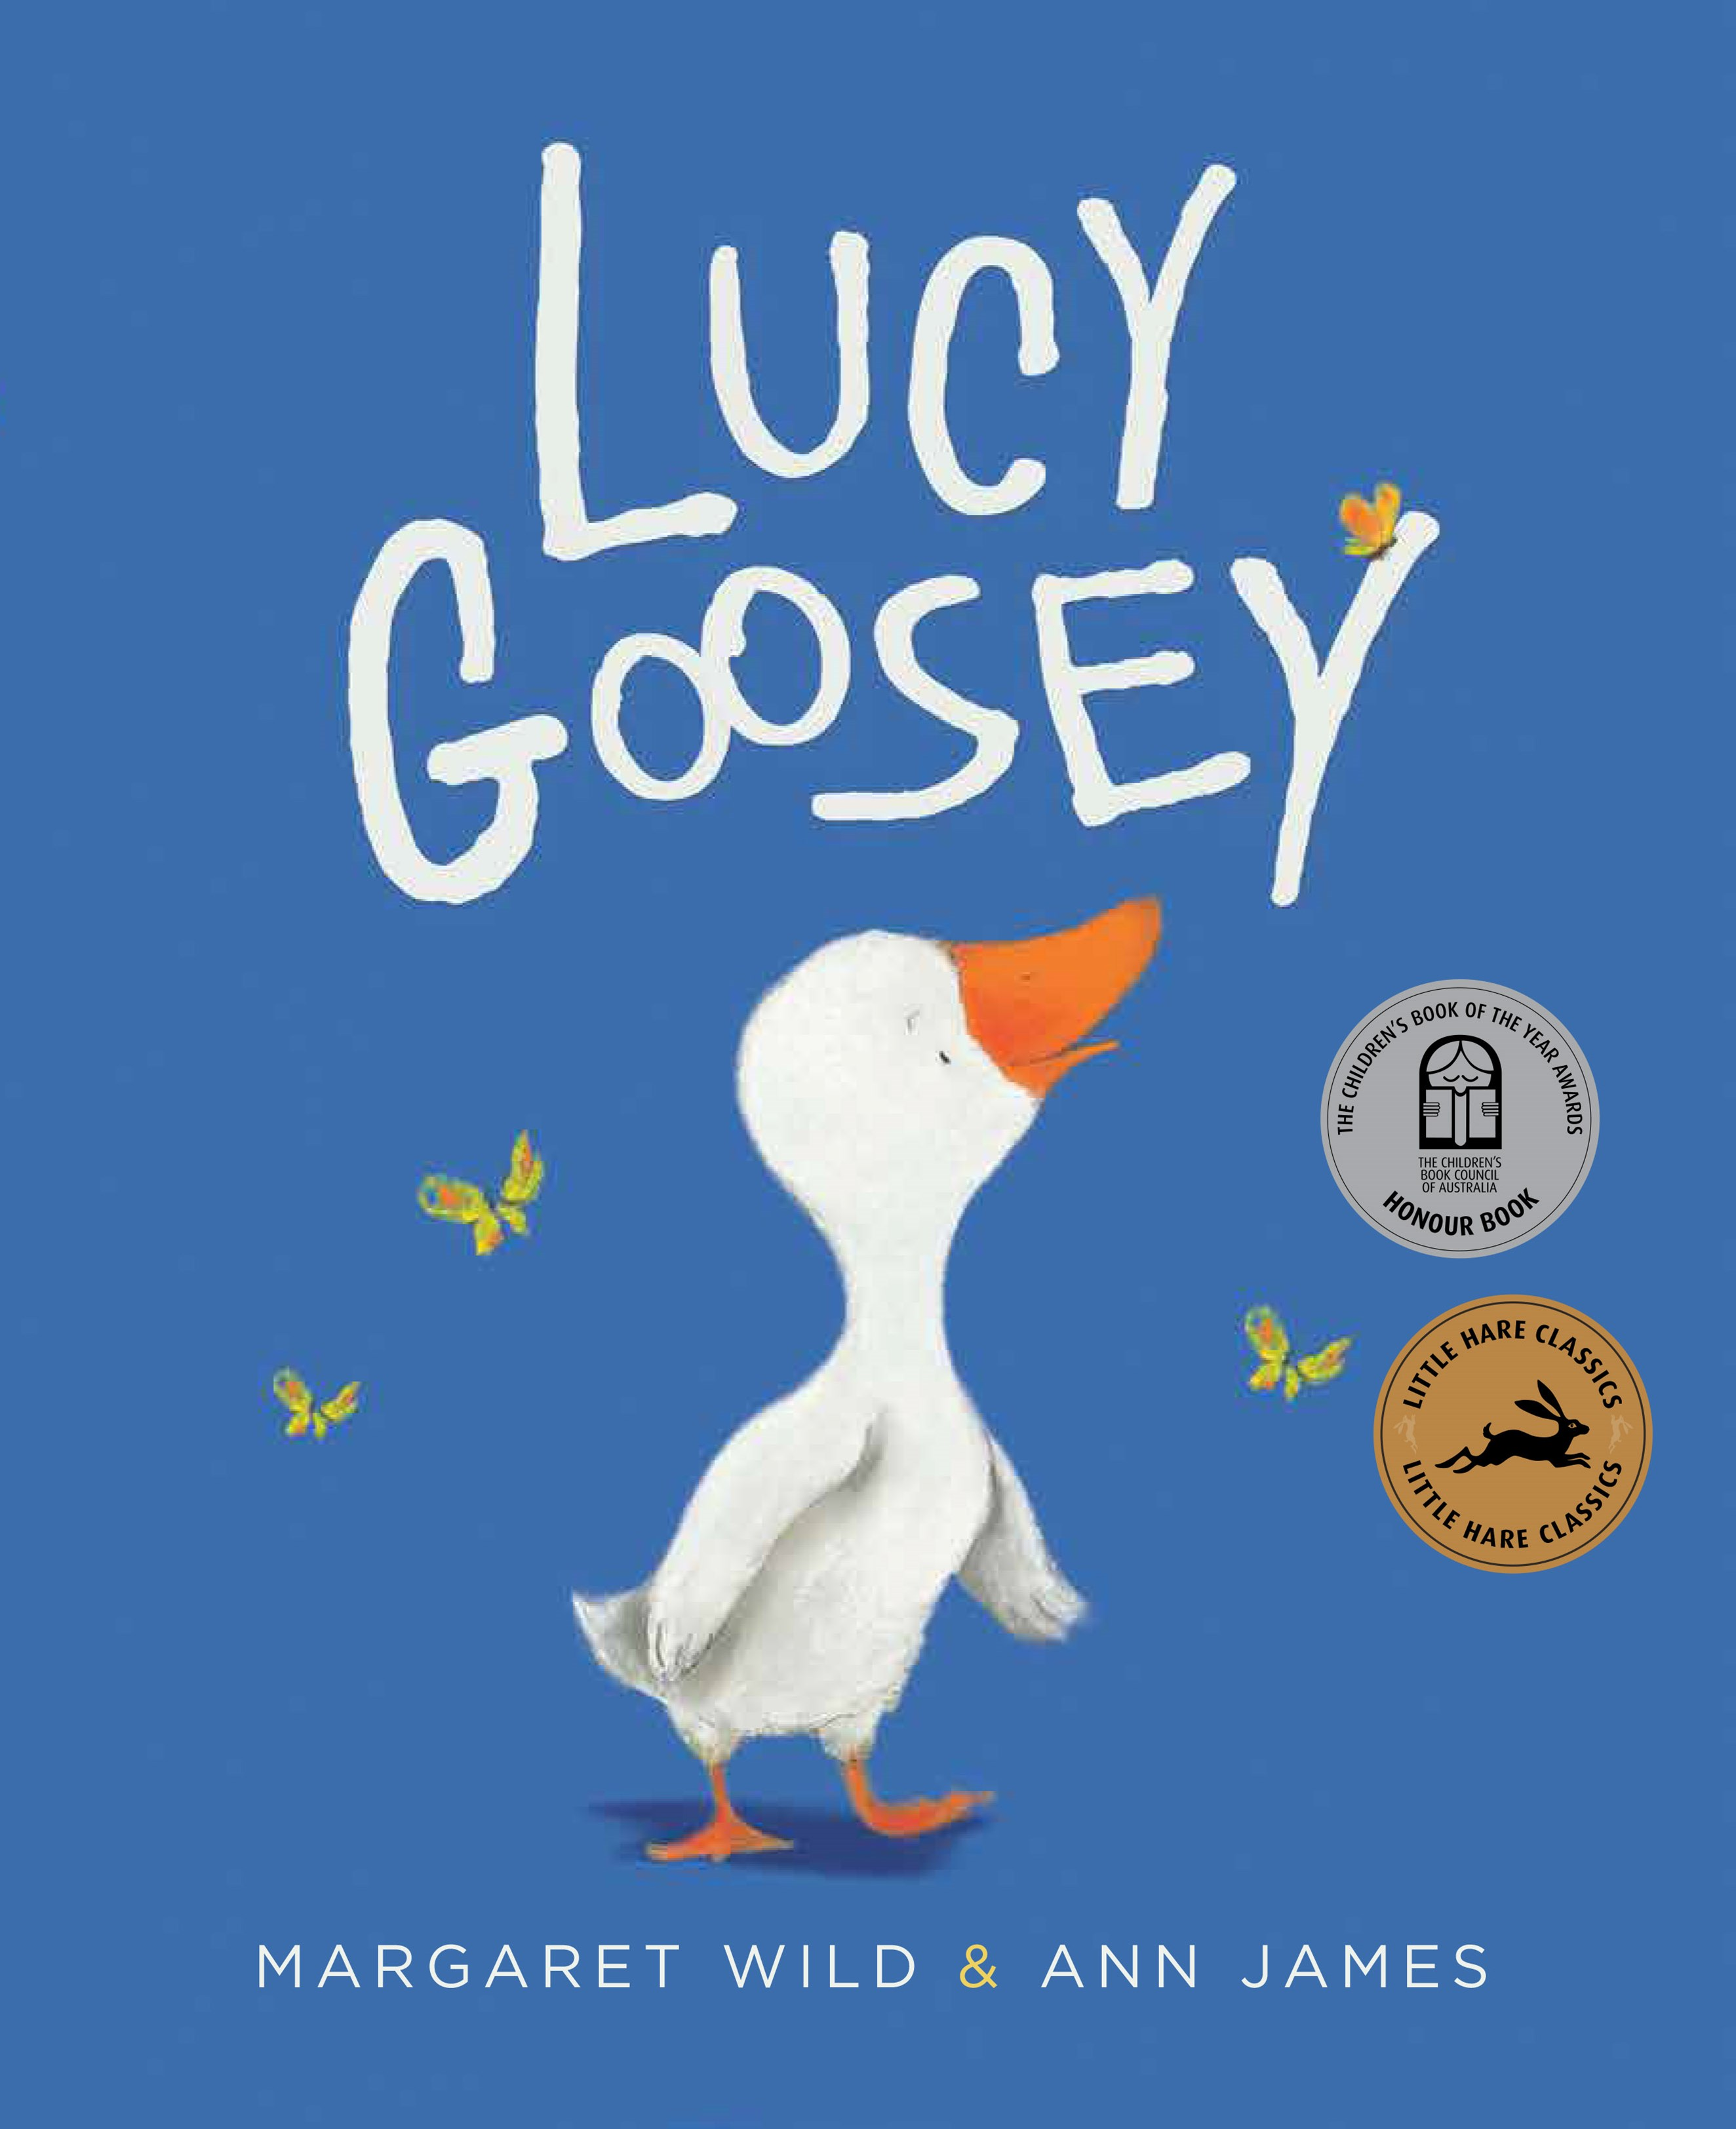 Lucy Goosey